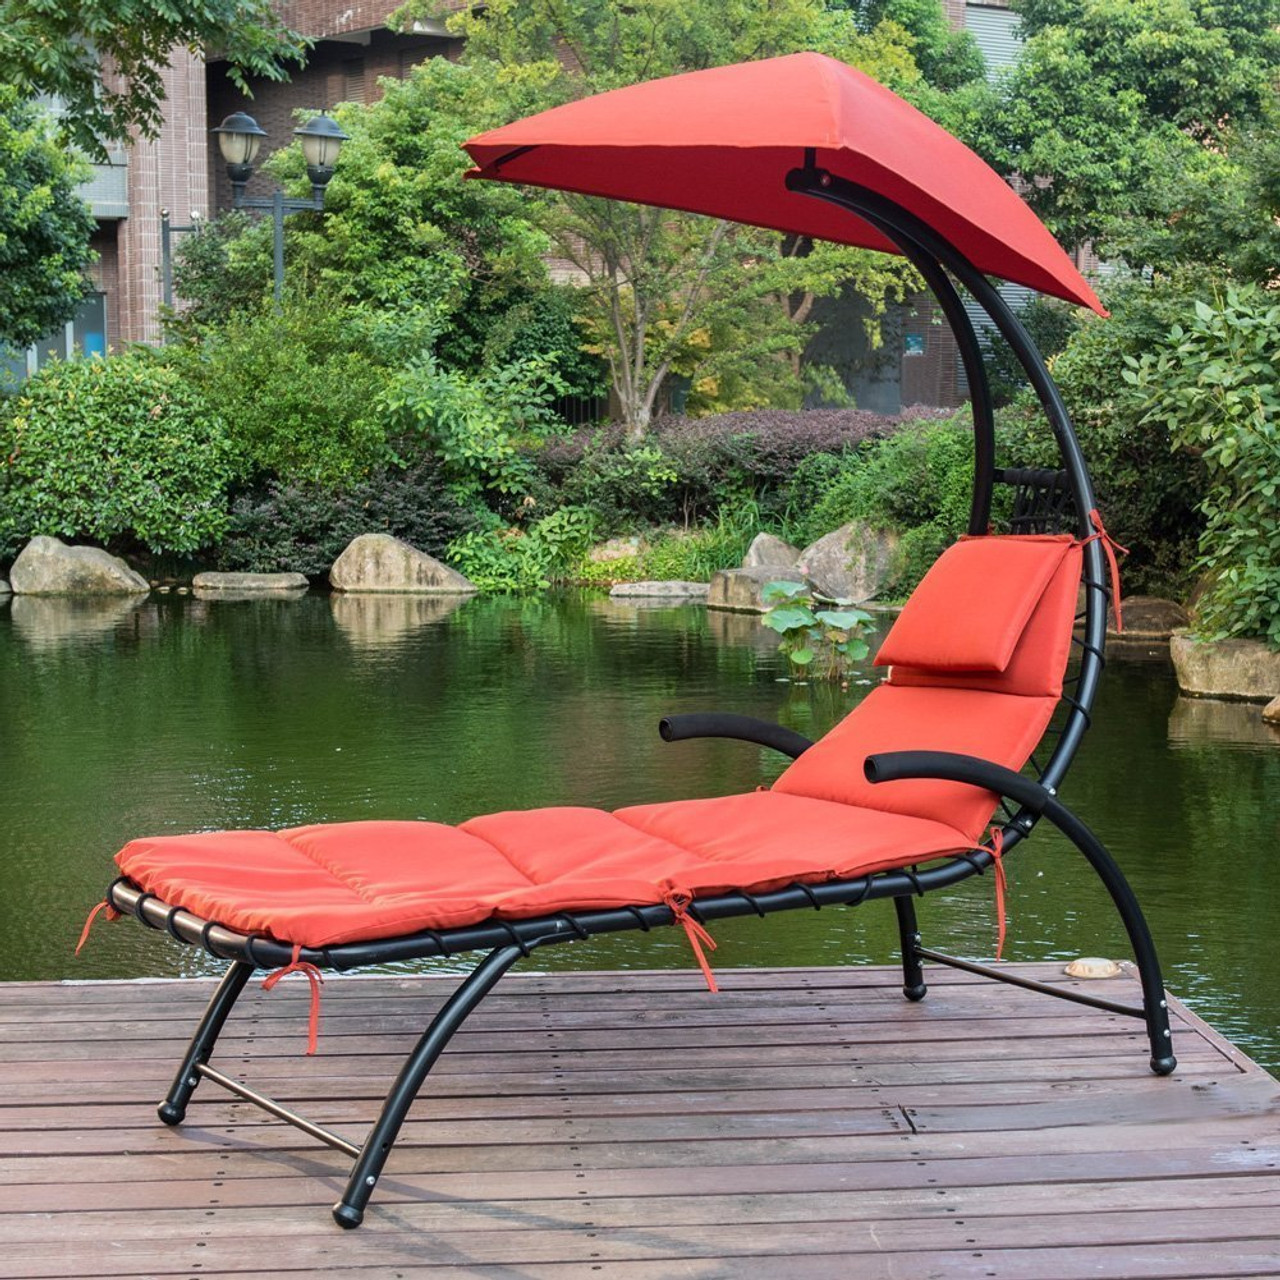 Sundale Outdoor Patio Dream Chaise Lounger Chair with Sun Shade Canopy & Patio Dream Chaise Lounger Chair with Sun Shade Canopy